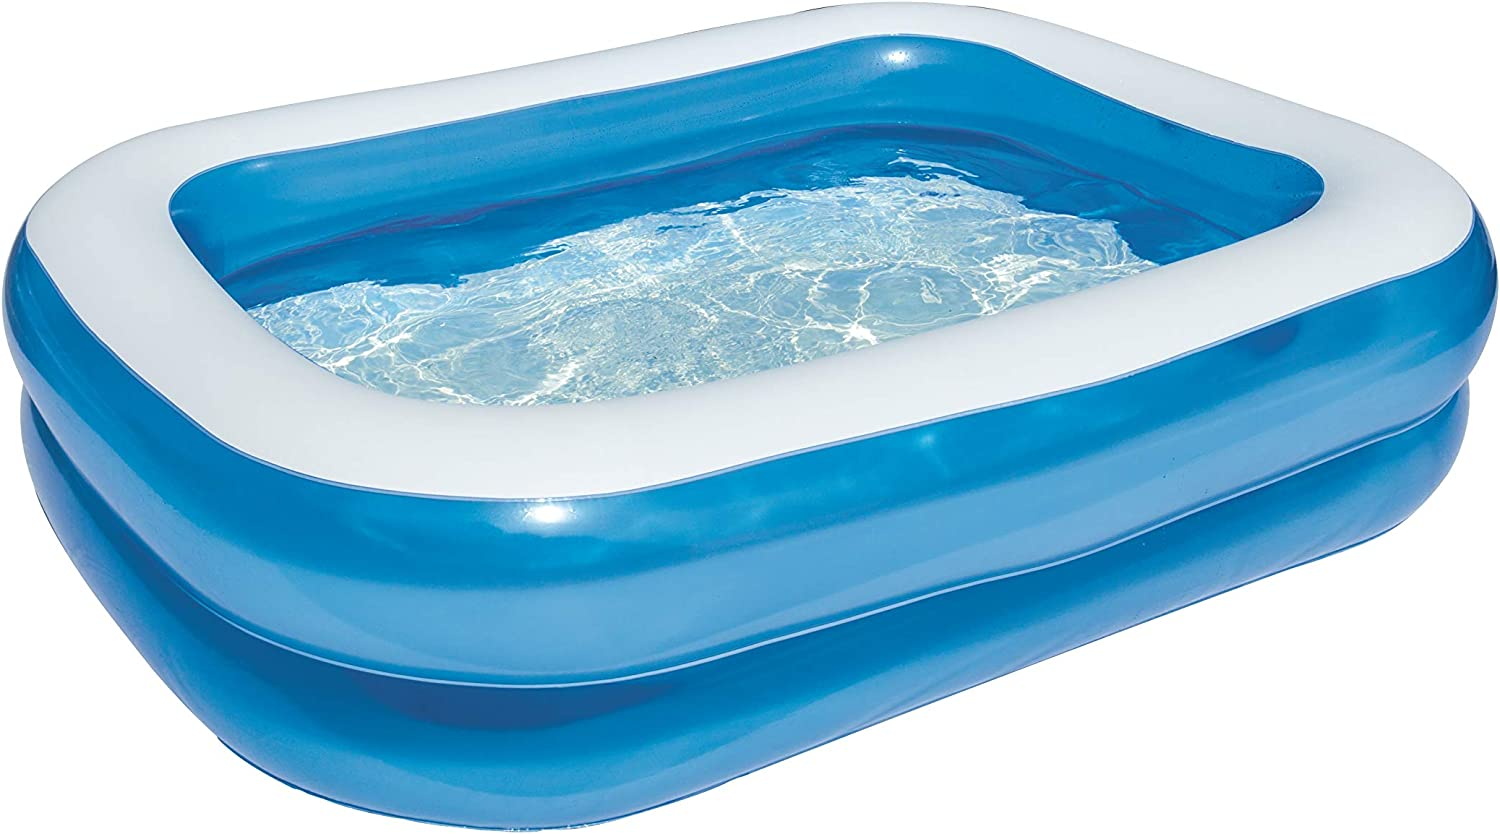 Amazon.com: Piscina inflable rectangular para la familia ...